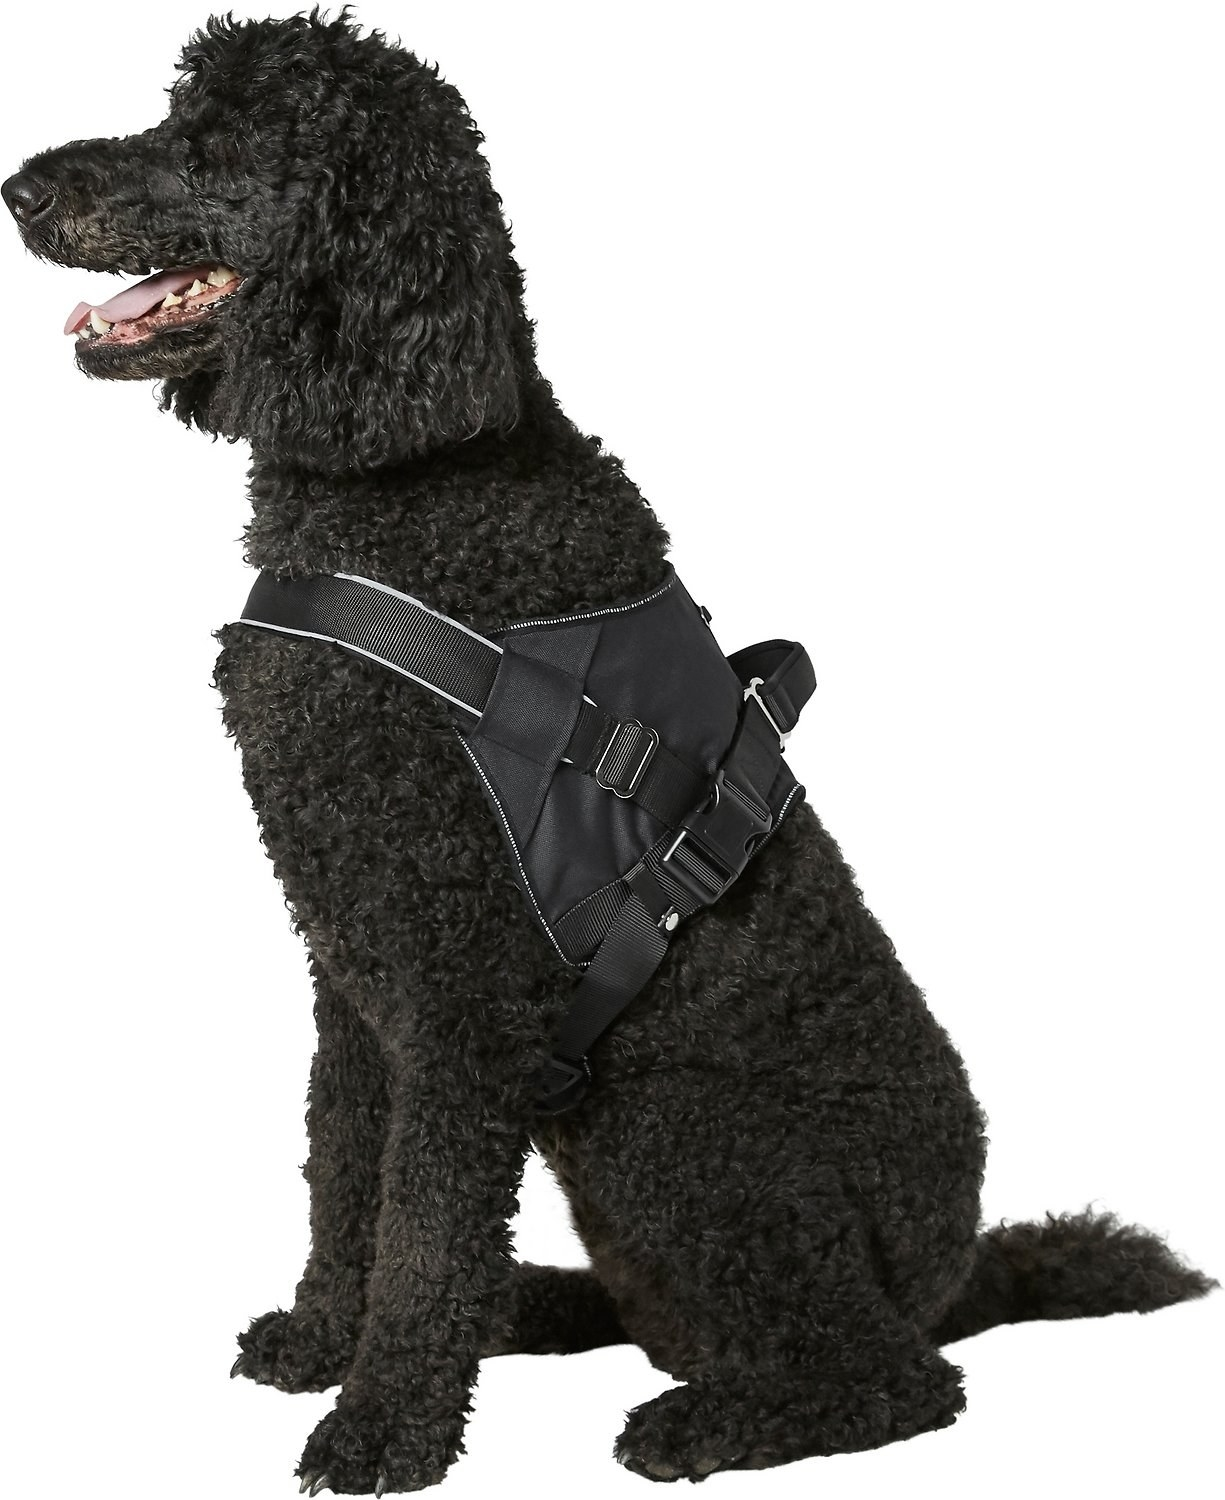 a large dog wearing the harness